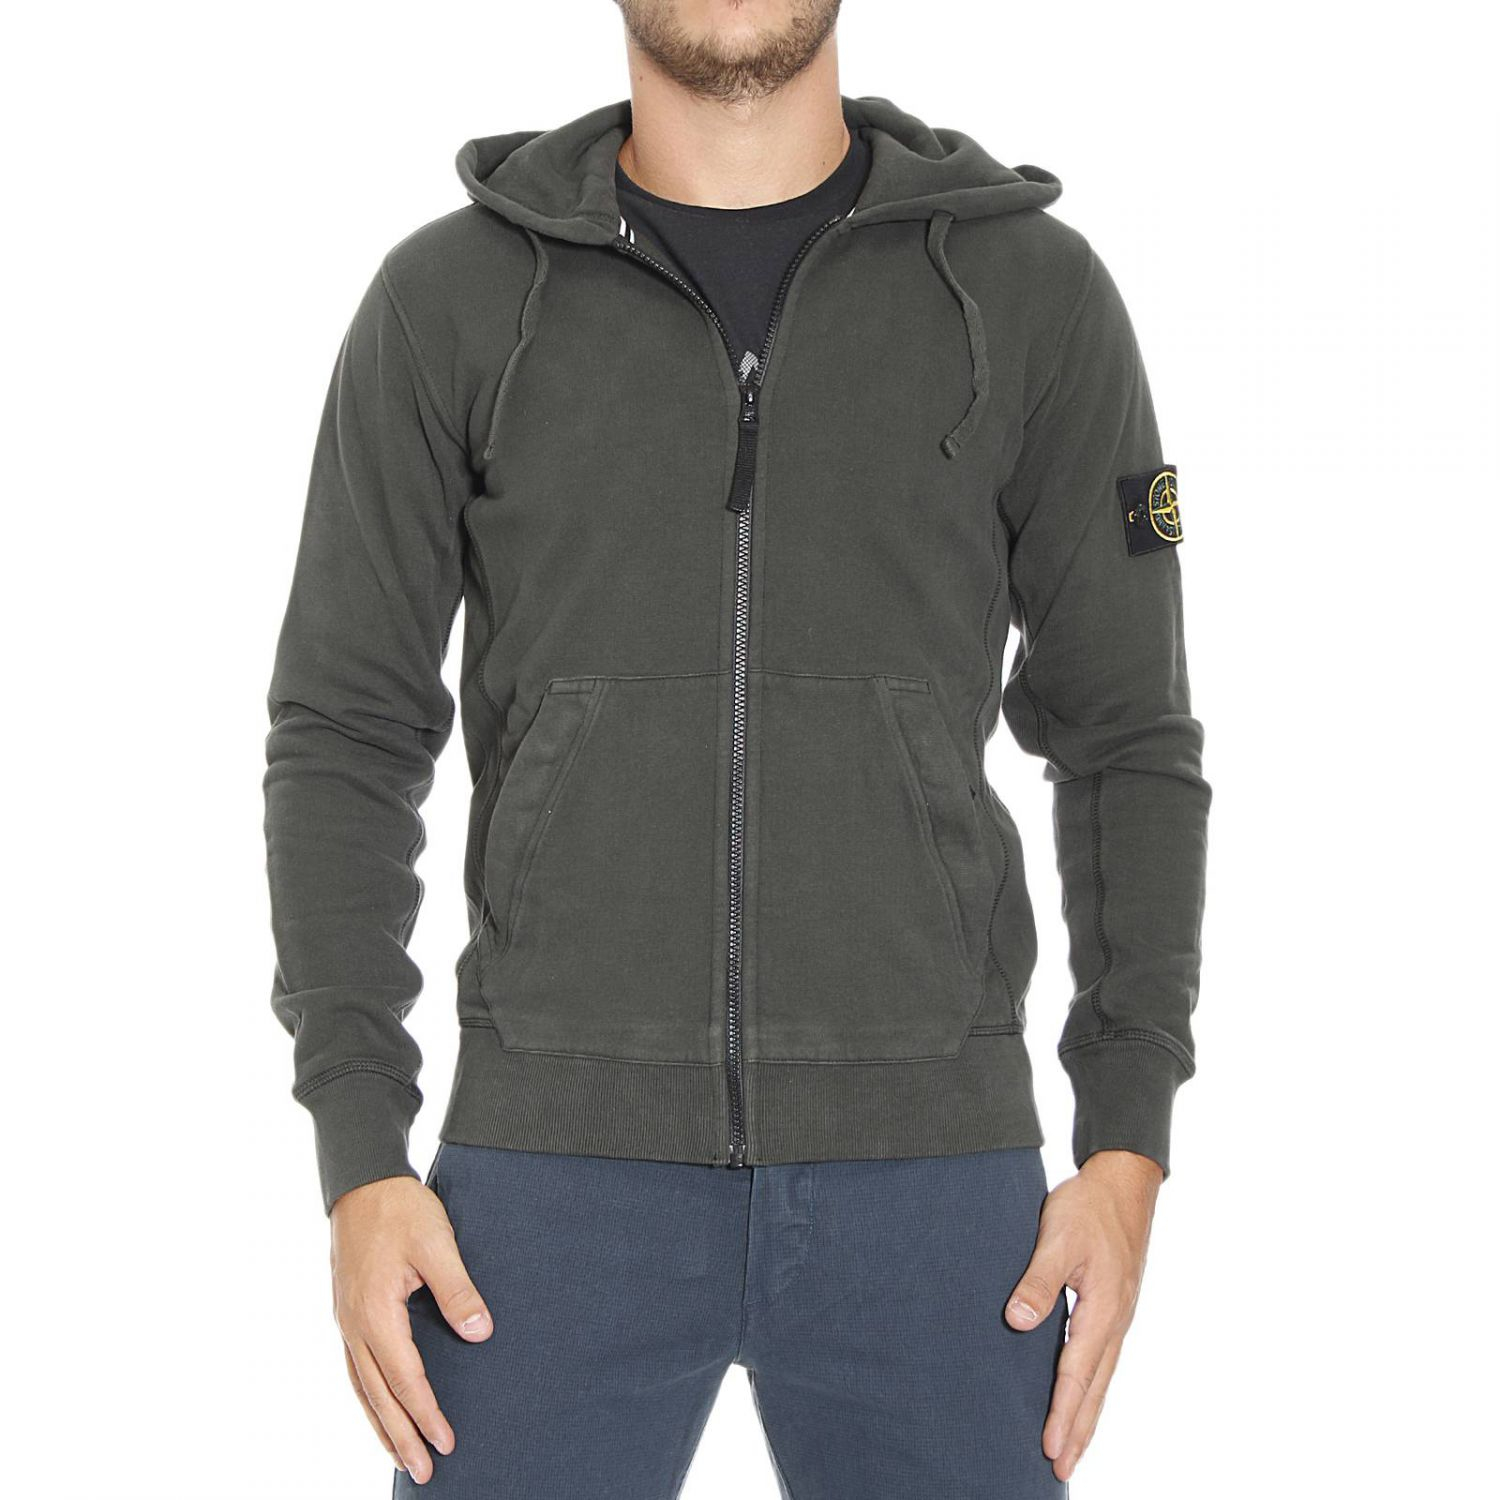 stone island sweater sweetshirt zip with hoodie in green for men lyst. Black Bedroom Furniture Sets. Home Design Ideas